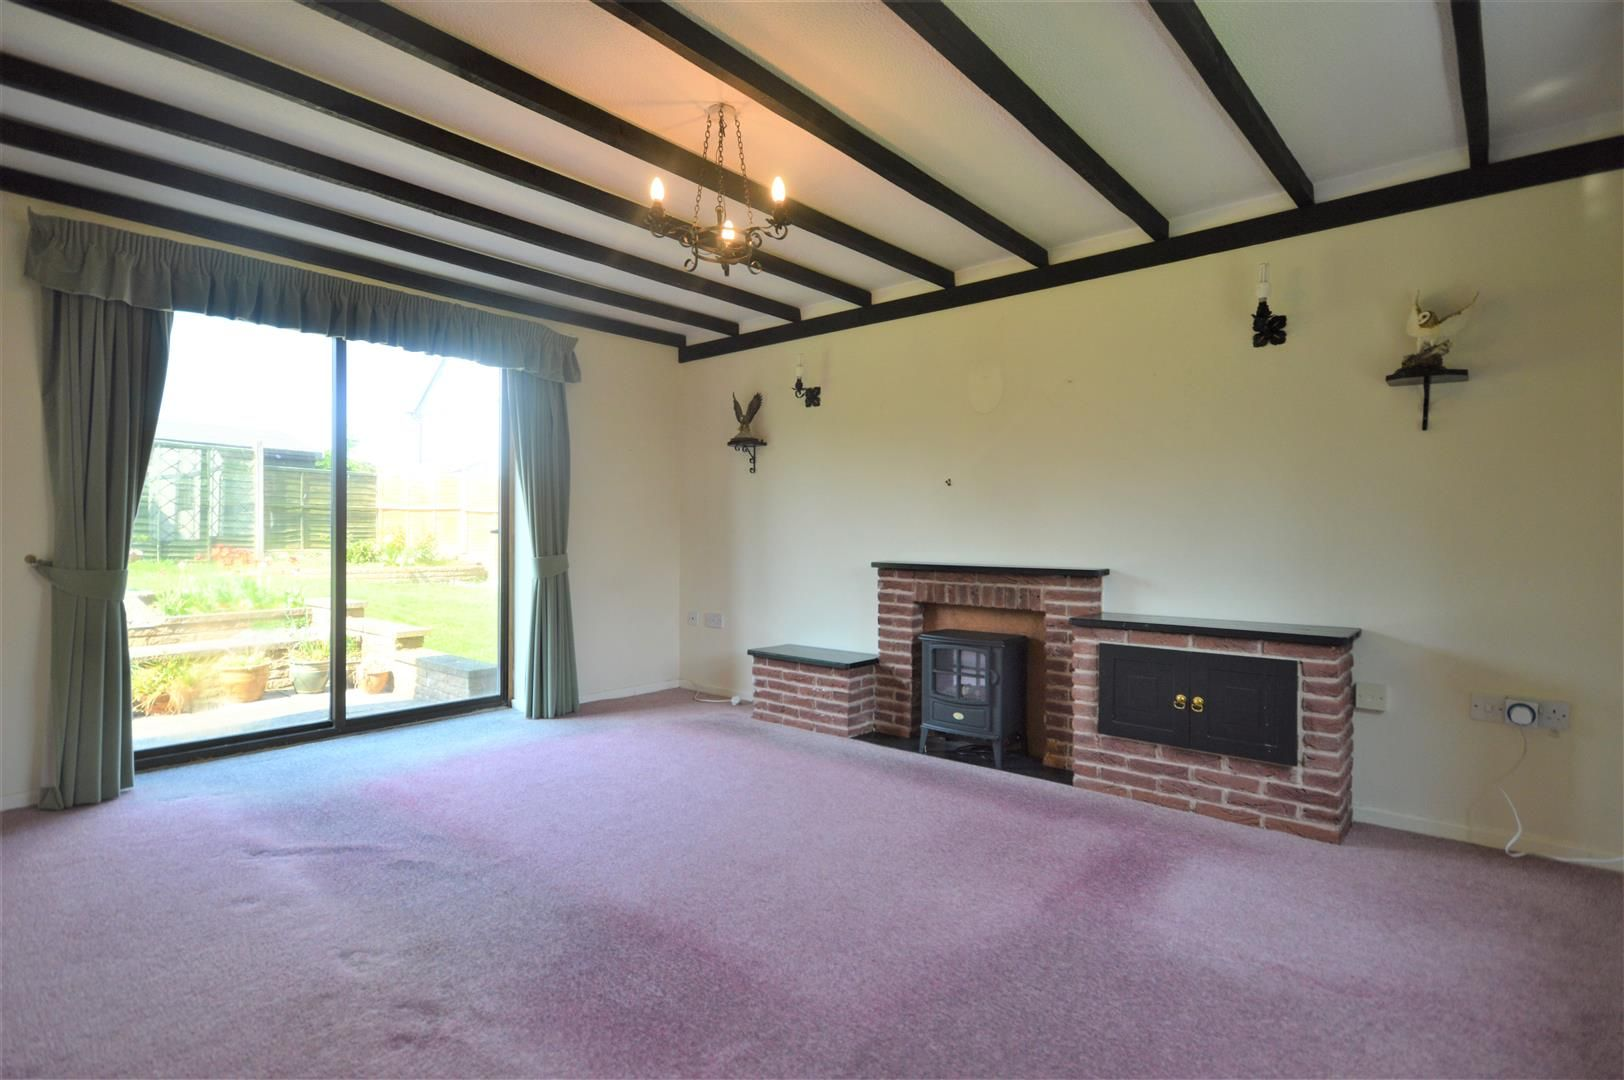 3 bed detached for sale in Leominster  - Property Image 3